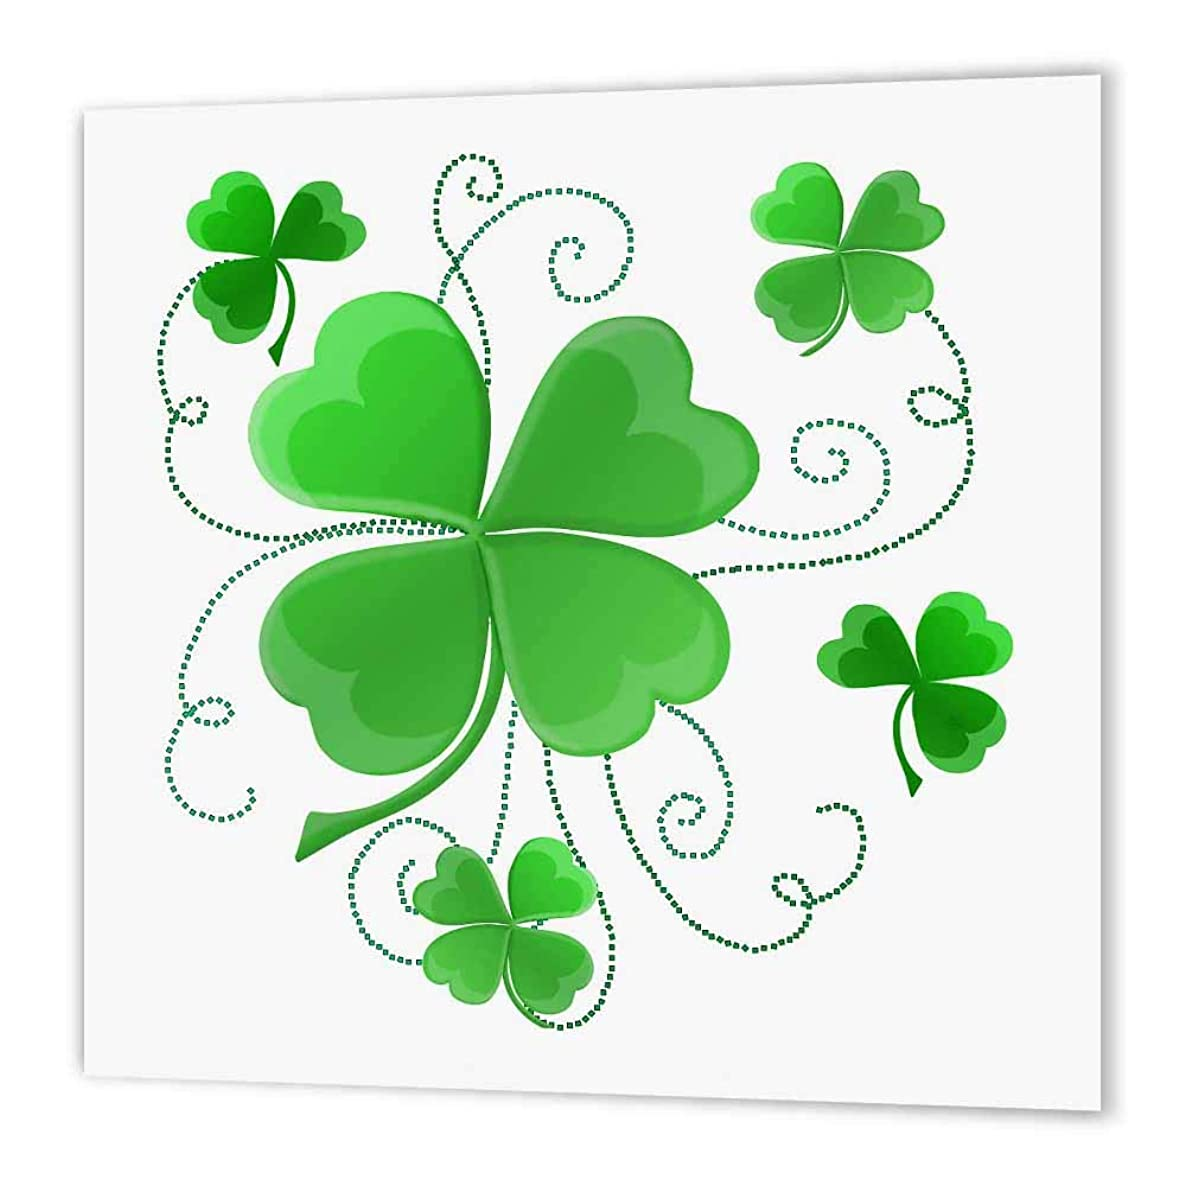 3dRose ht_11678_3 This Design is of Some Lucky Shamrocks Just in Time for St. Patricks Day-Iron on Heat Transfer Paper for White Material, 10 by 10-Inch